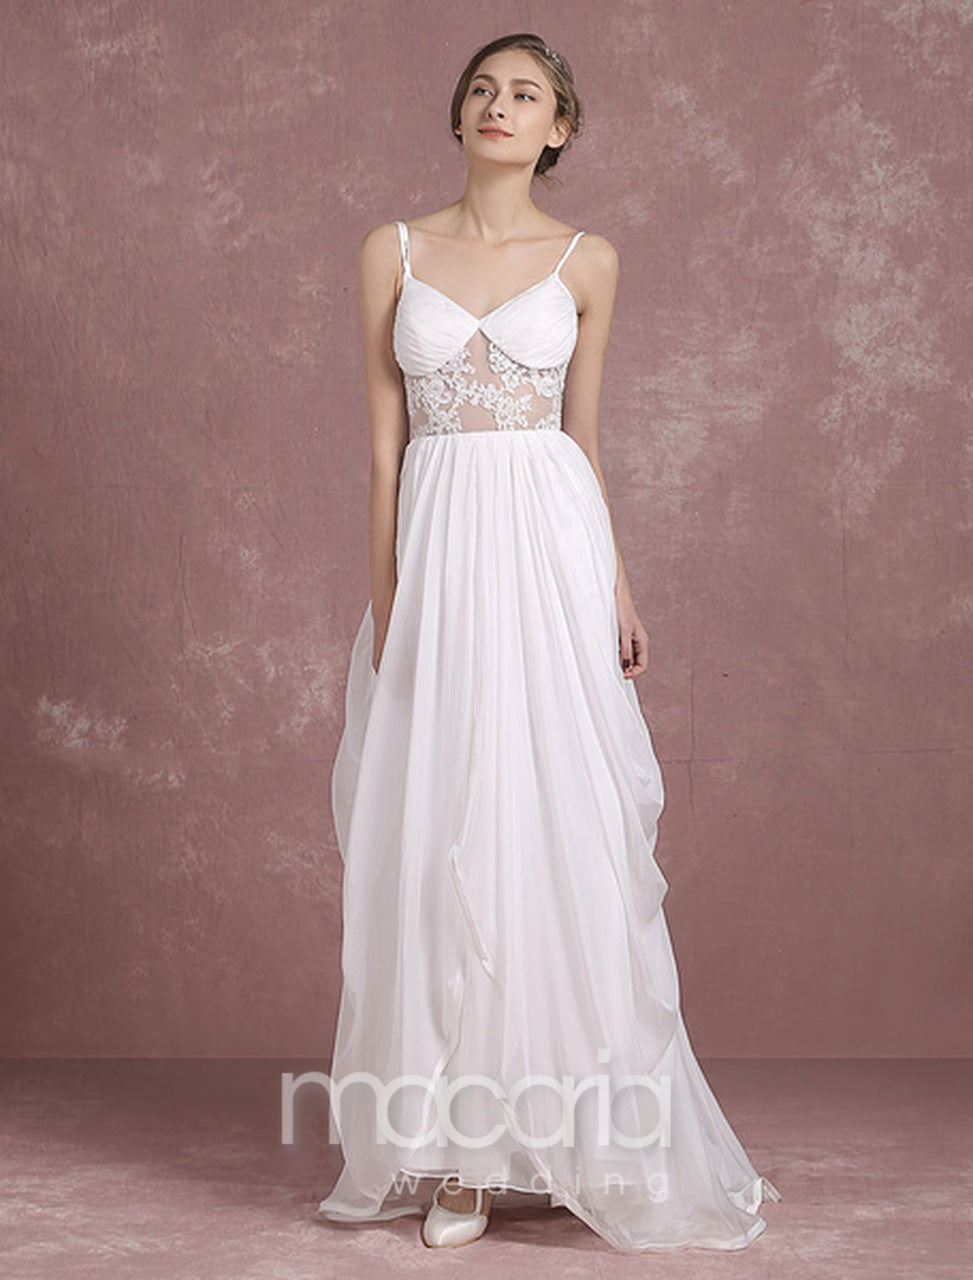 Wedding Dresses - Lace Applique Side Draping Chiffon | Macaria Wedding